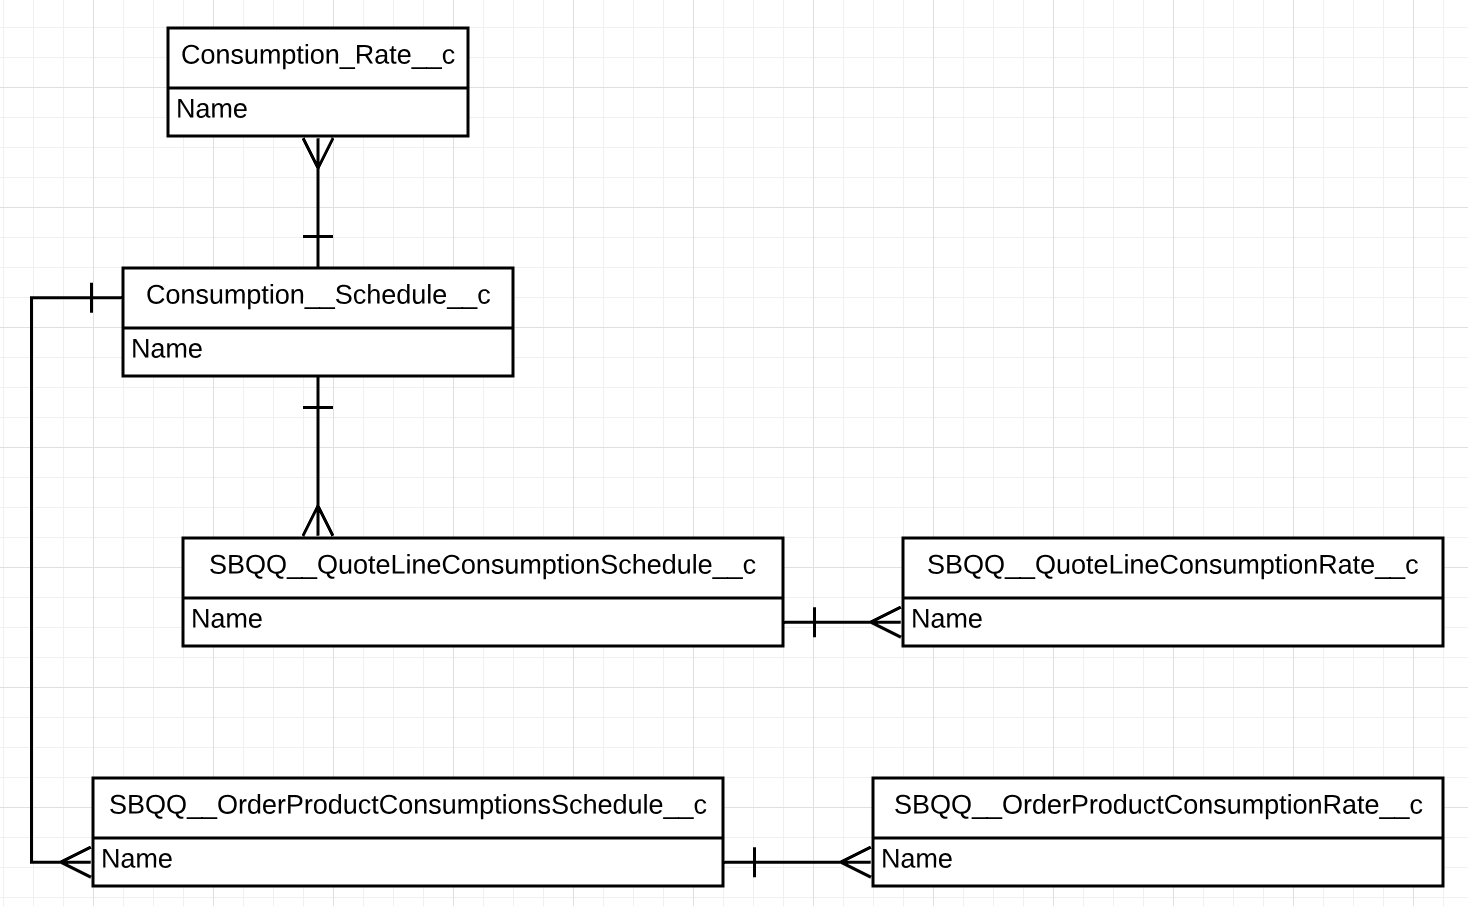 The entity relationship diagram shows the following relationships: The Consumption Schedule object has a master-detail relationship from the Consumption Rate object. The Consumption Schedule object has a one-to-many relationship from the Quote Line Consumption Schedule and Order Product Consumption Schedule objects.  The Quote Line Consumption Schedule object has a master-detail relationship from the Quote Line Consumption Rate object.  The Order Product Consumption Schedule object has a master-detail relationship from the Order Product Consumption Rate object.